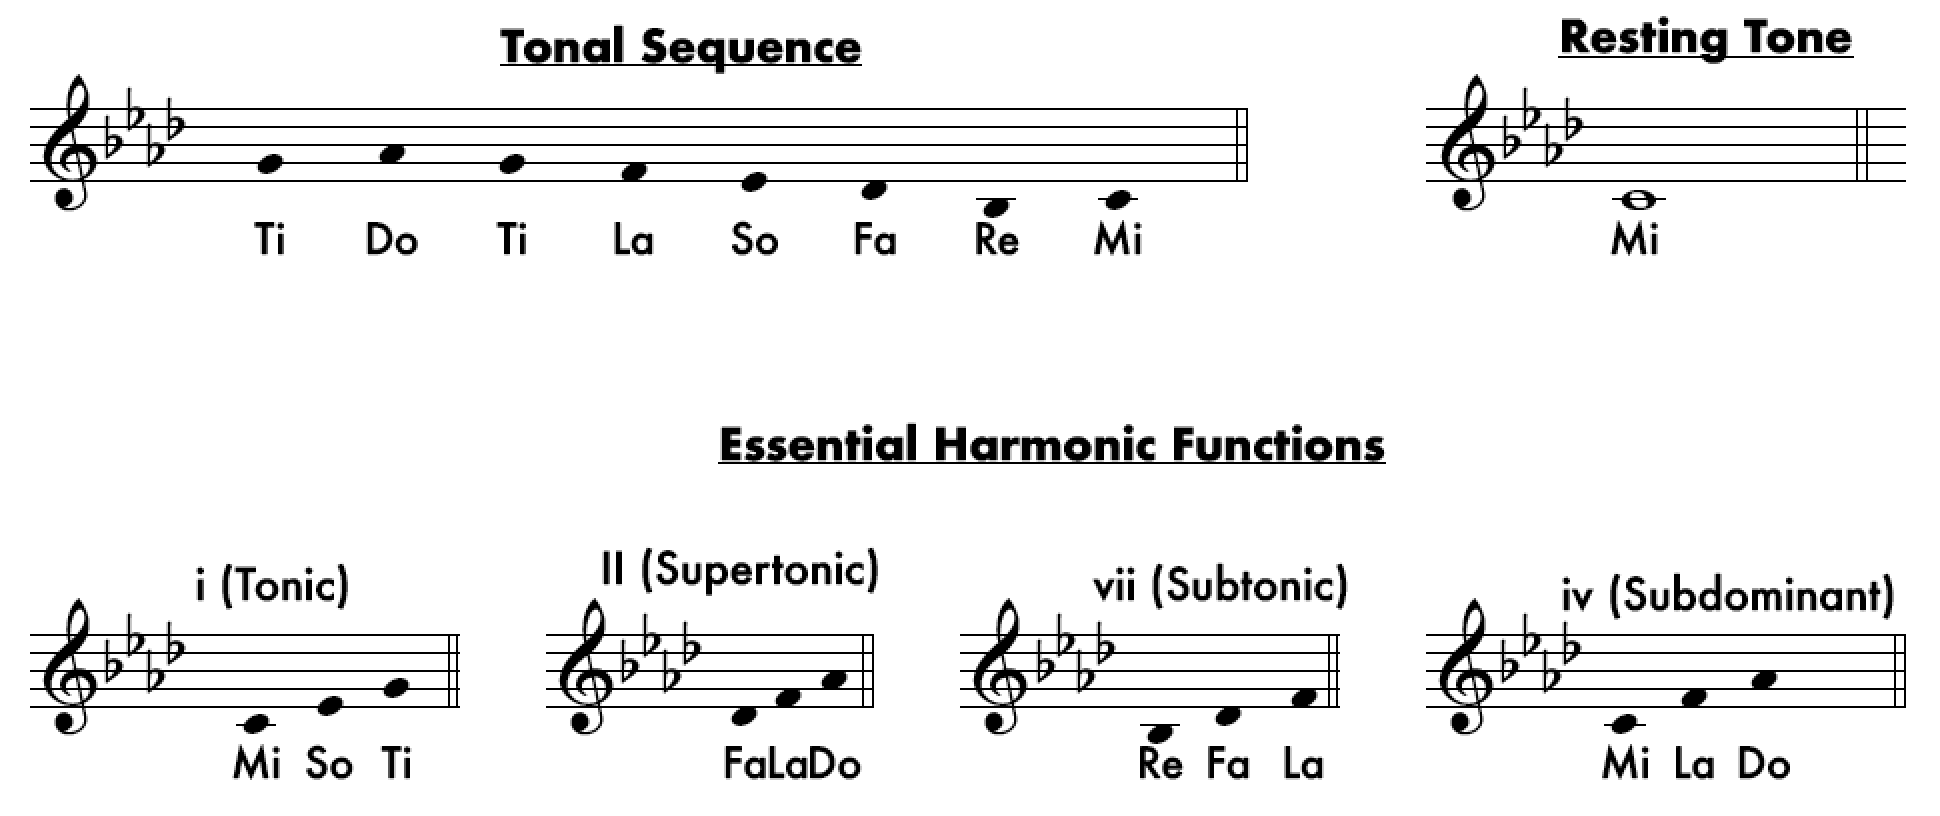 Phrygian Tonality - From Major to Locrian: An Overview of The Tonalities